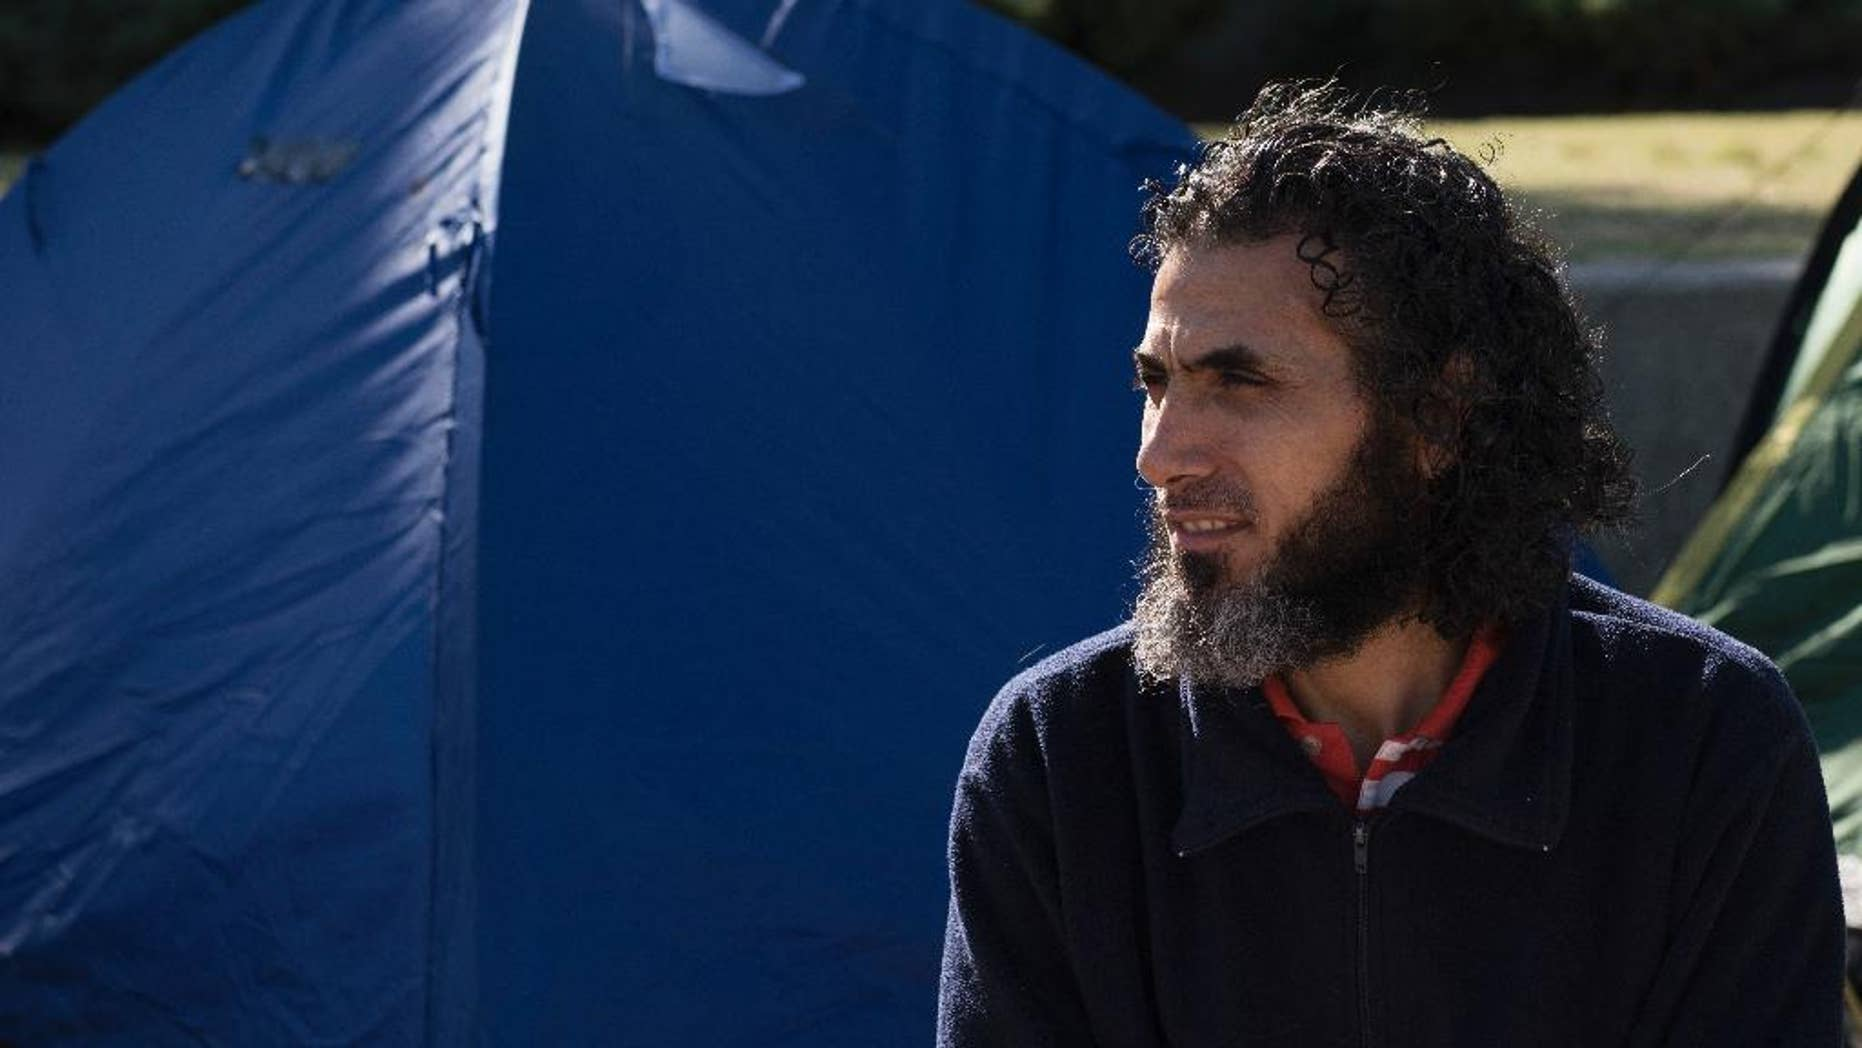 FILE - In this May 5, 2015 file photo, former Guantanamo detainee Abu Wa'el Dhiab, from Syria, sits in front of the U.S. embassy while visiting former fellow detainees demanding financial assistance from the U.S., in Montevideo, Uruguay. Uruguay's government is offering to bring Dhiab's family to the South American country so they can reunite. The Uruguayan foreign ministry said in a letter Tuesday, Oct. 11, 2016 that the visas and expenses to bring Dhiab's family have been approved.  (AP Photo/Matilde Campodonico)